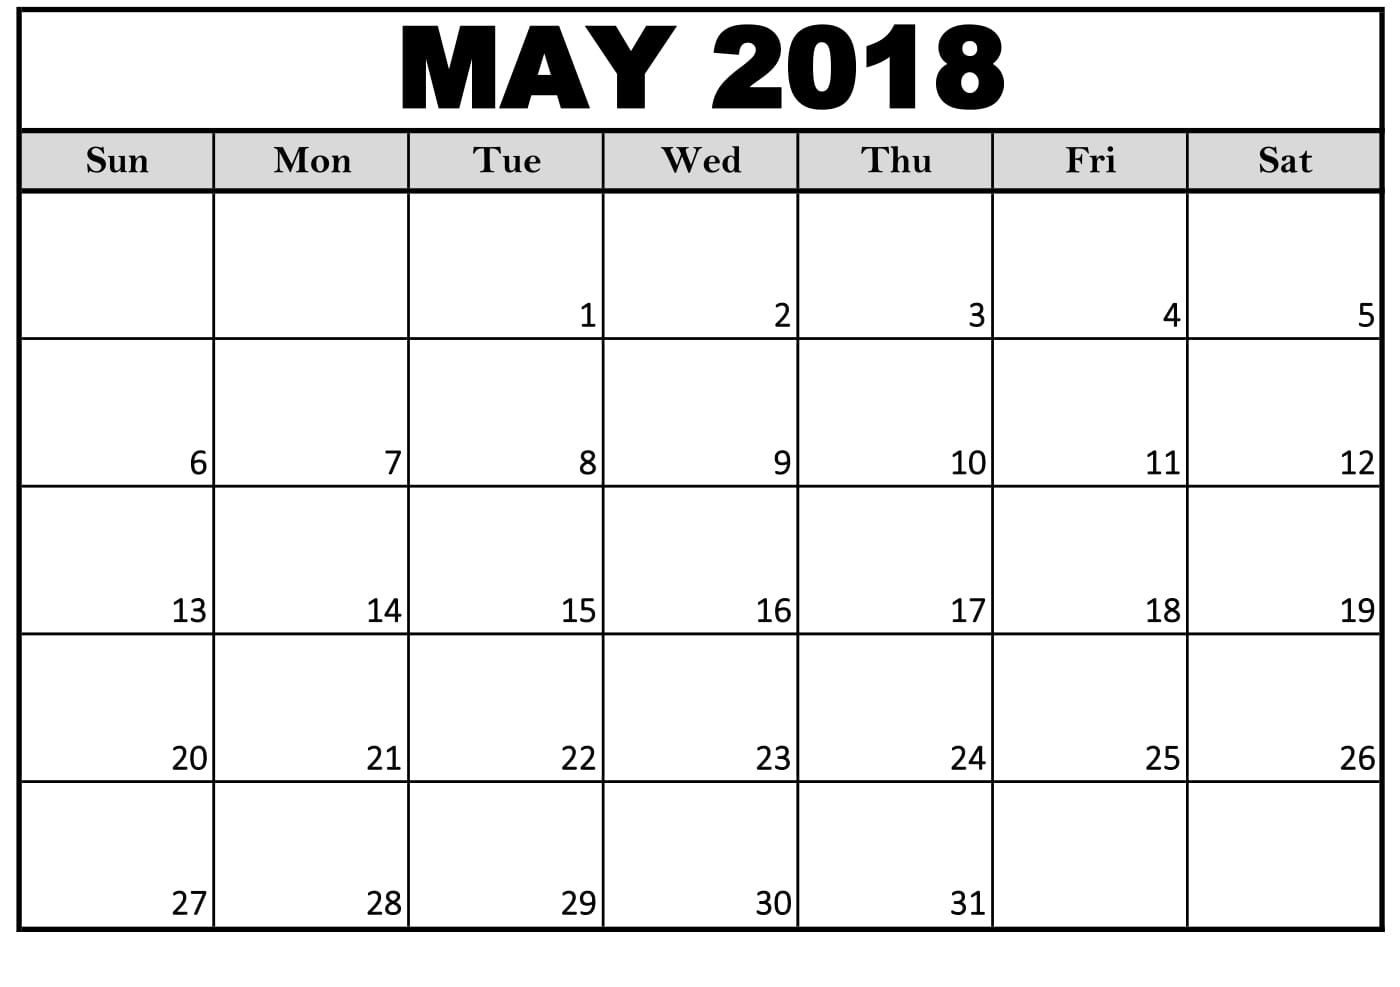 May Calendar 2018 Monthly And Weakly Schedule May 2018 Calendar